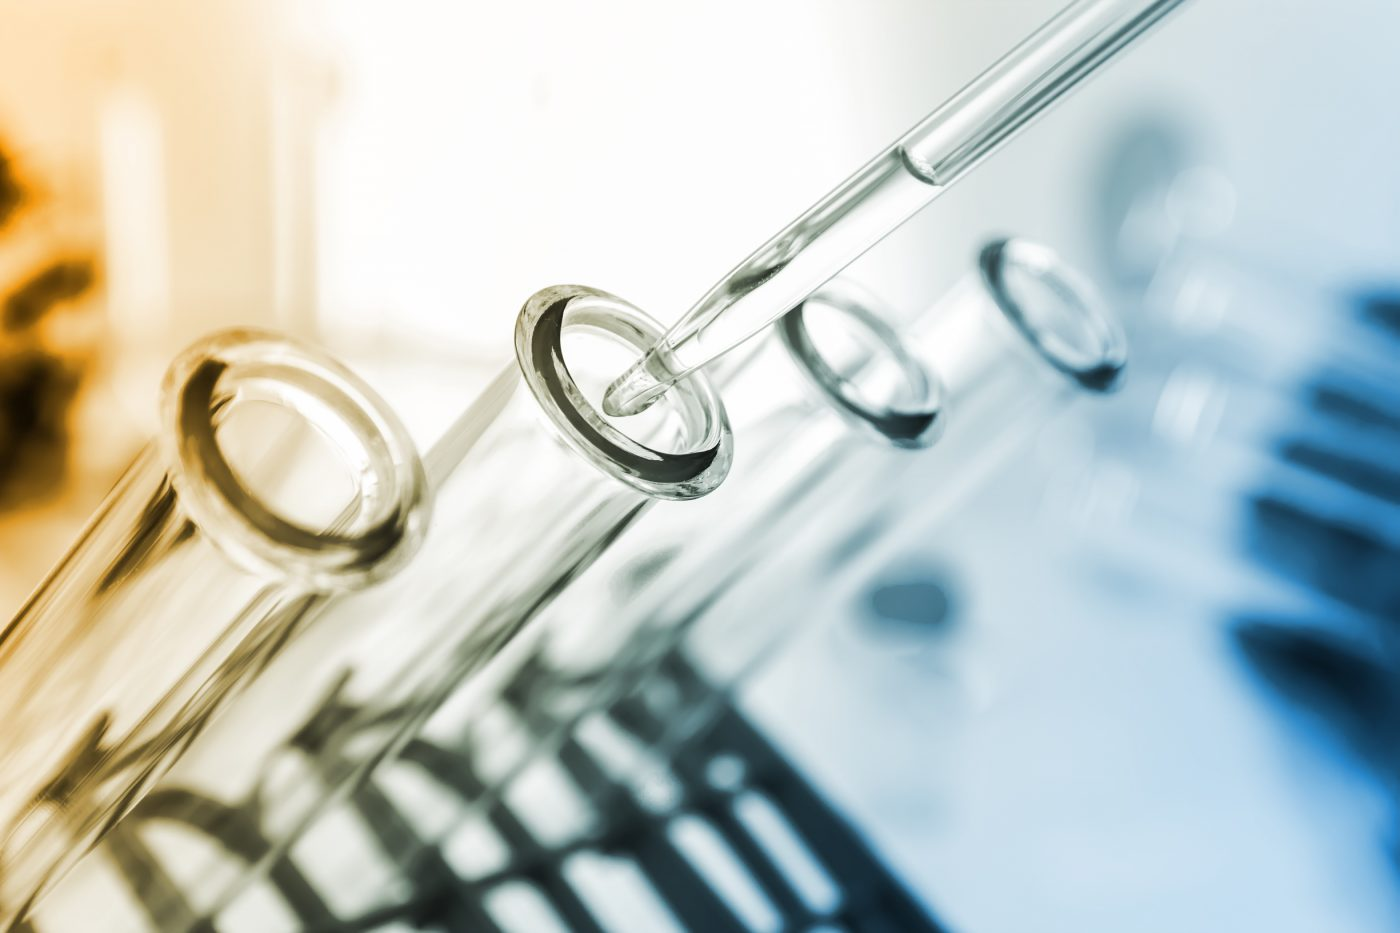 Researchers Examine Combination Chemotherapy in Patients With Advanced Prostate Cancer